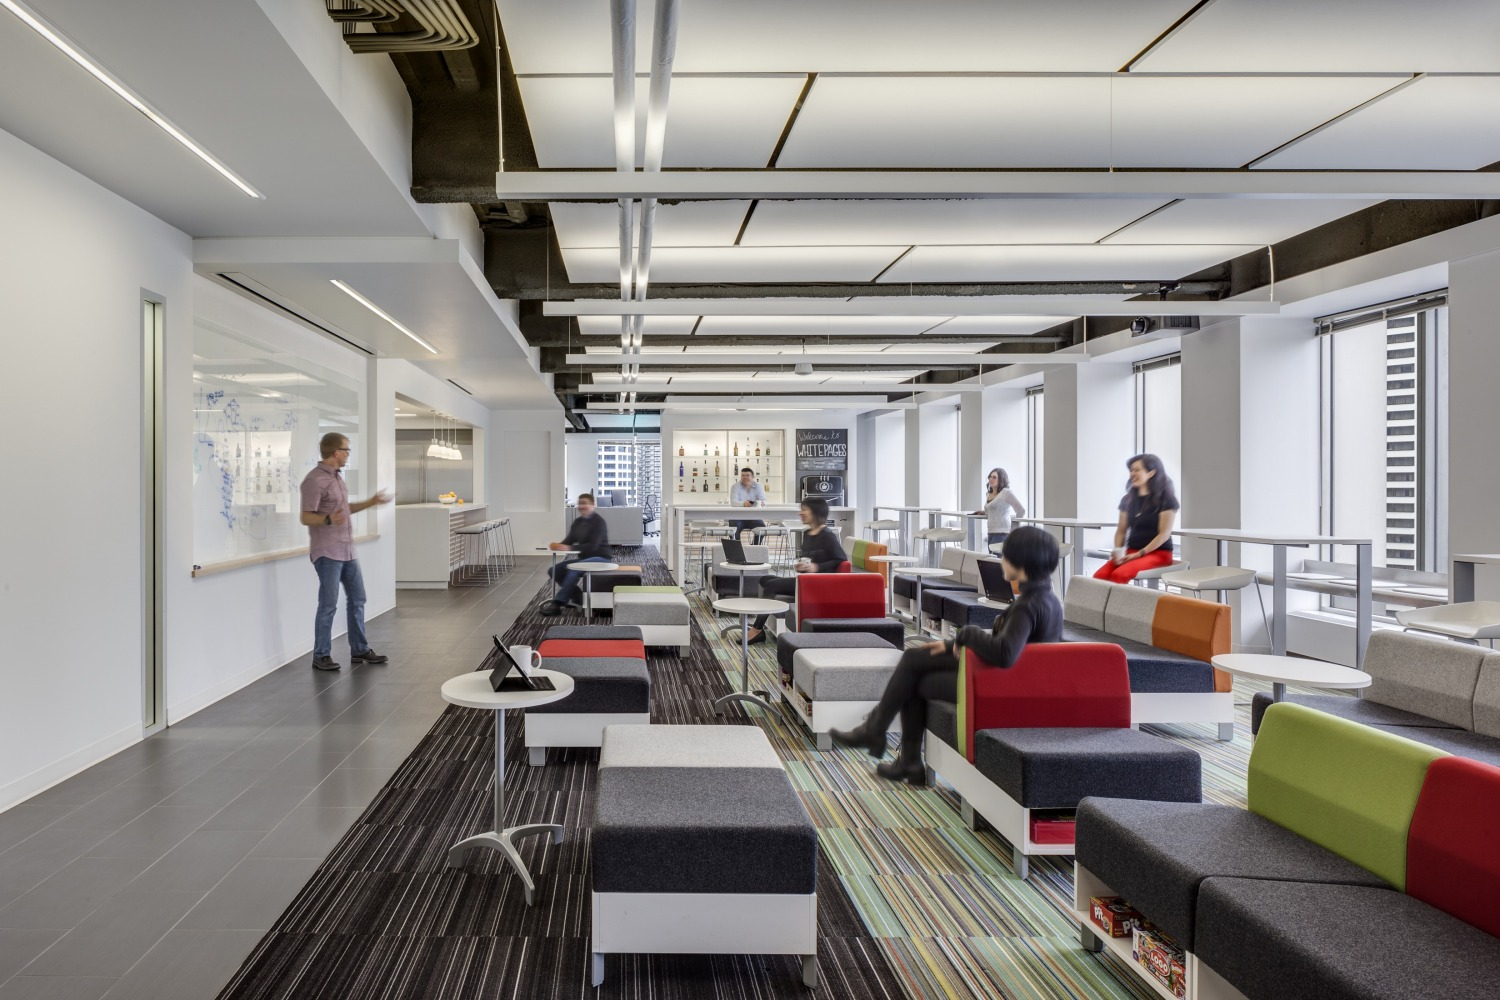 The Great Room Is A Space For Whitepages Employees To Gather Throughout Day